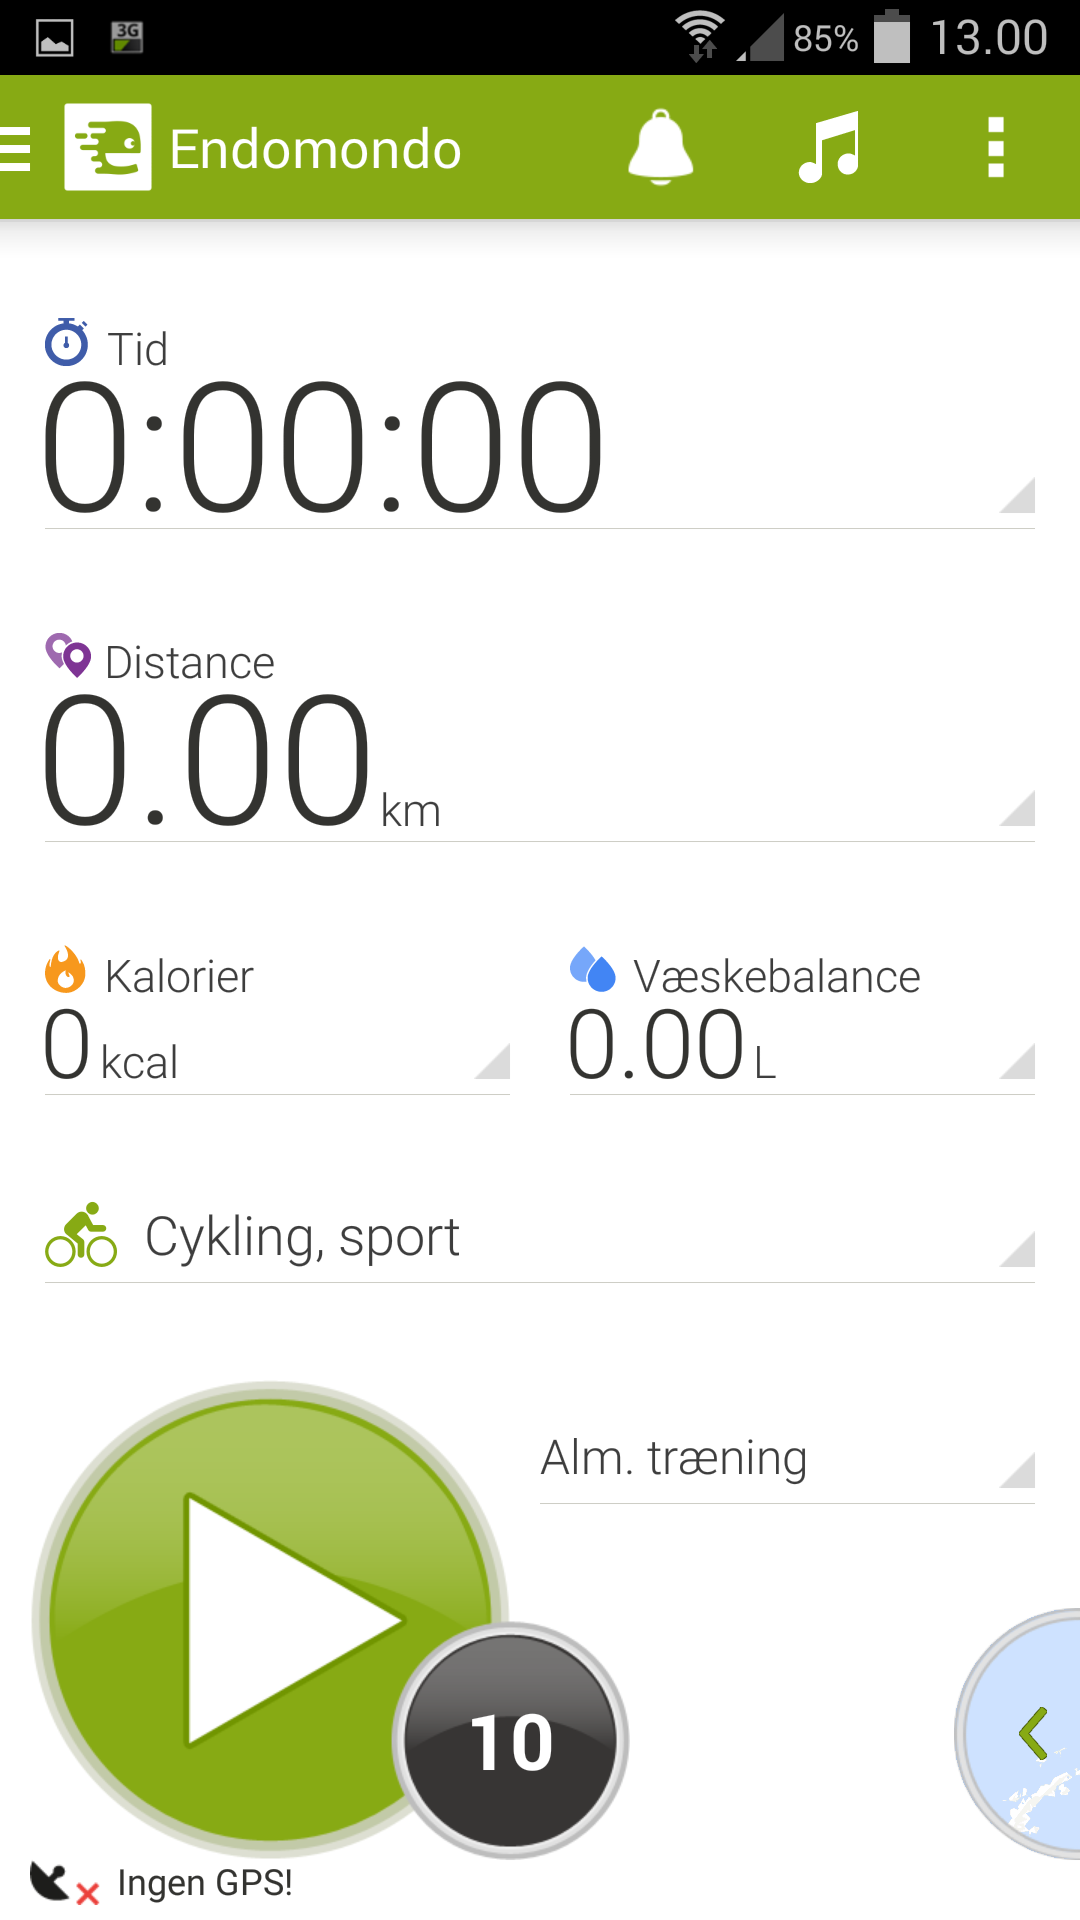 Endomondo-traening